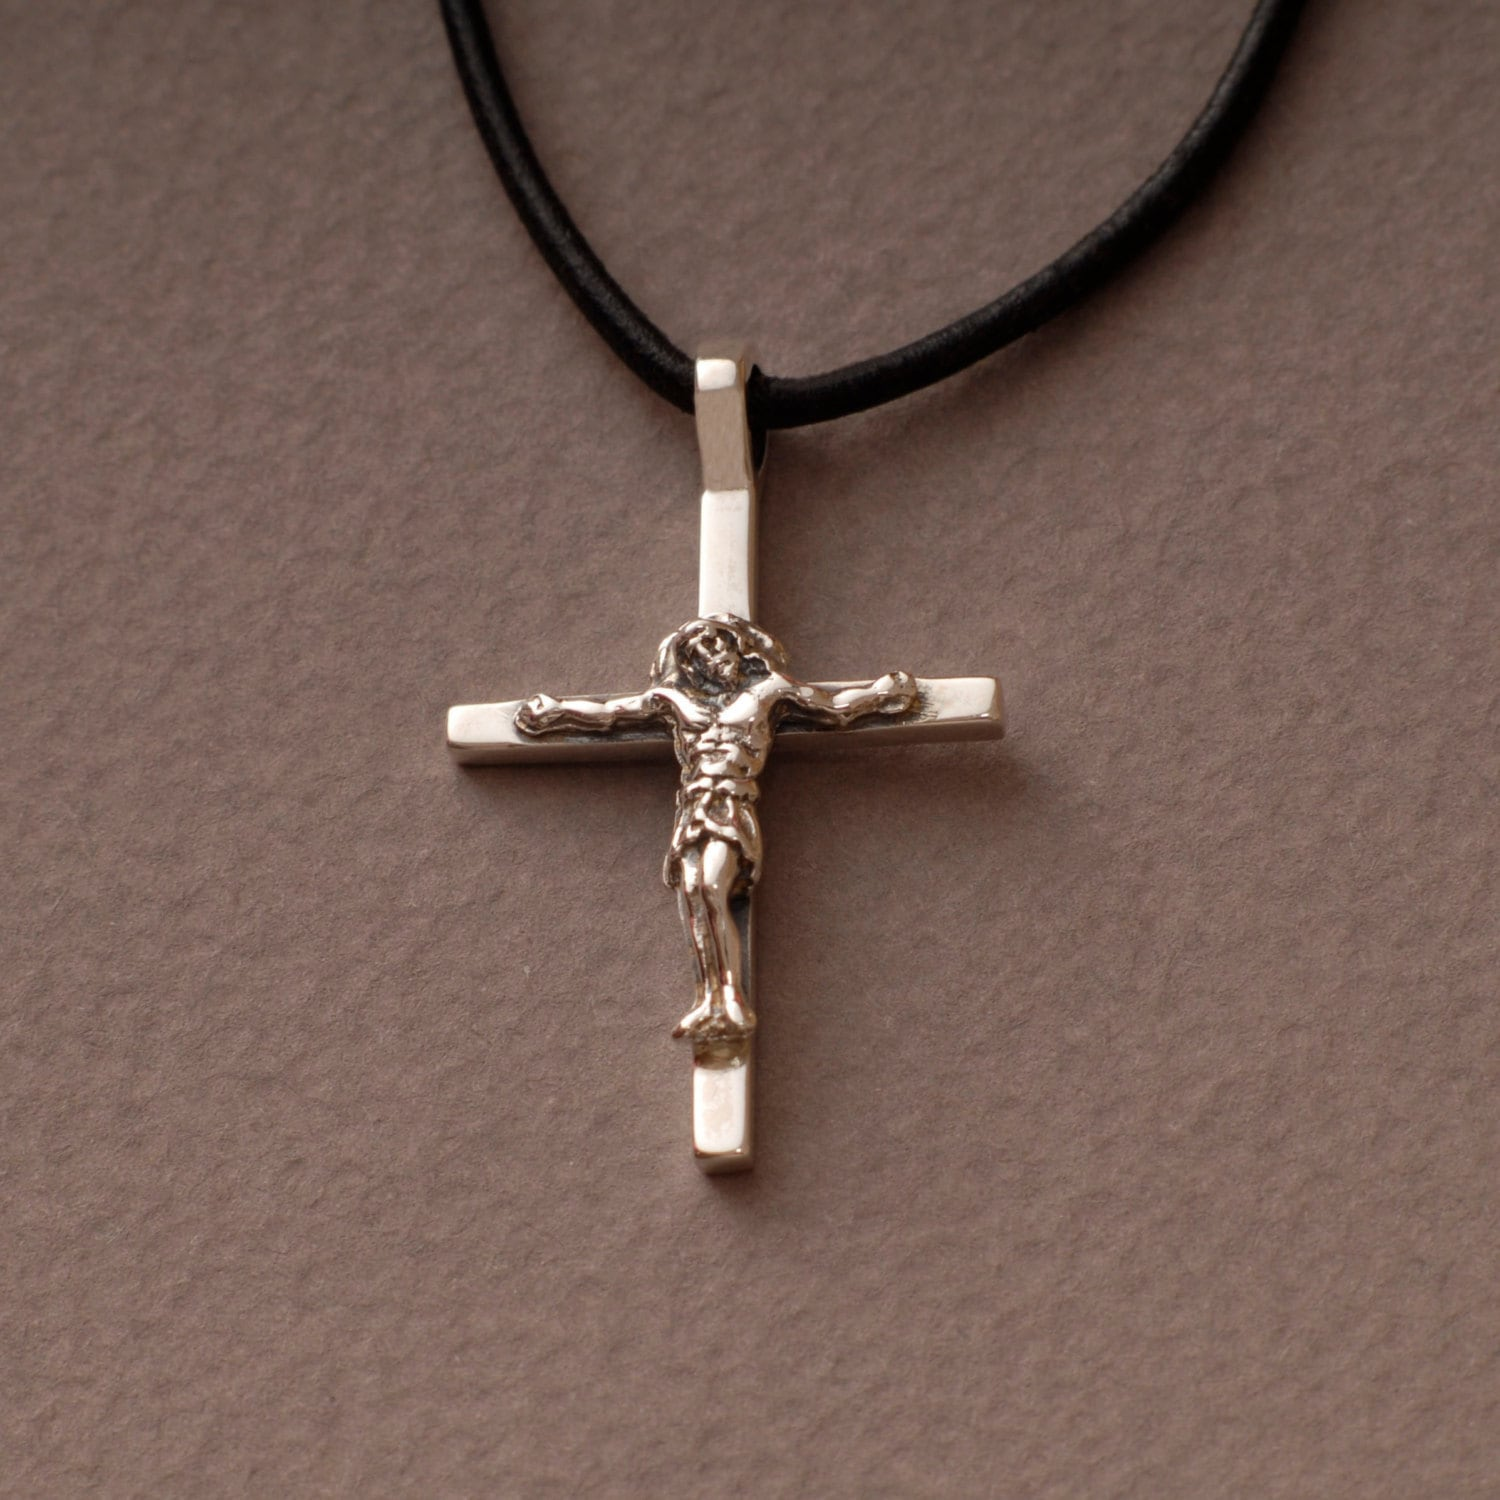 jesus crucifix cross necklace mens womens sterling silver. Black Bedroom Furniture Sets. Home Design Ideas